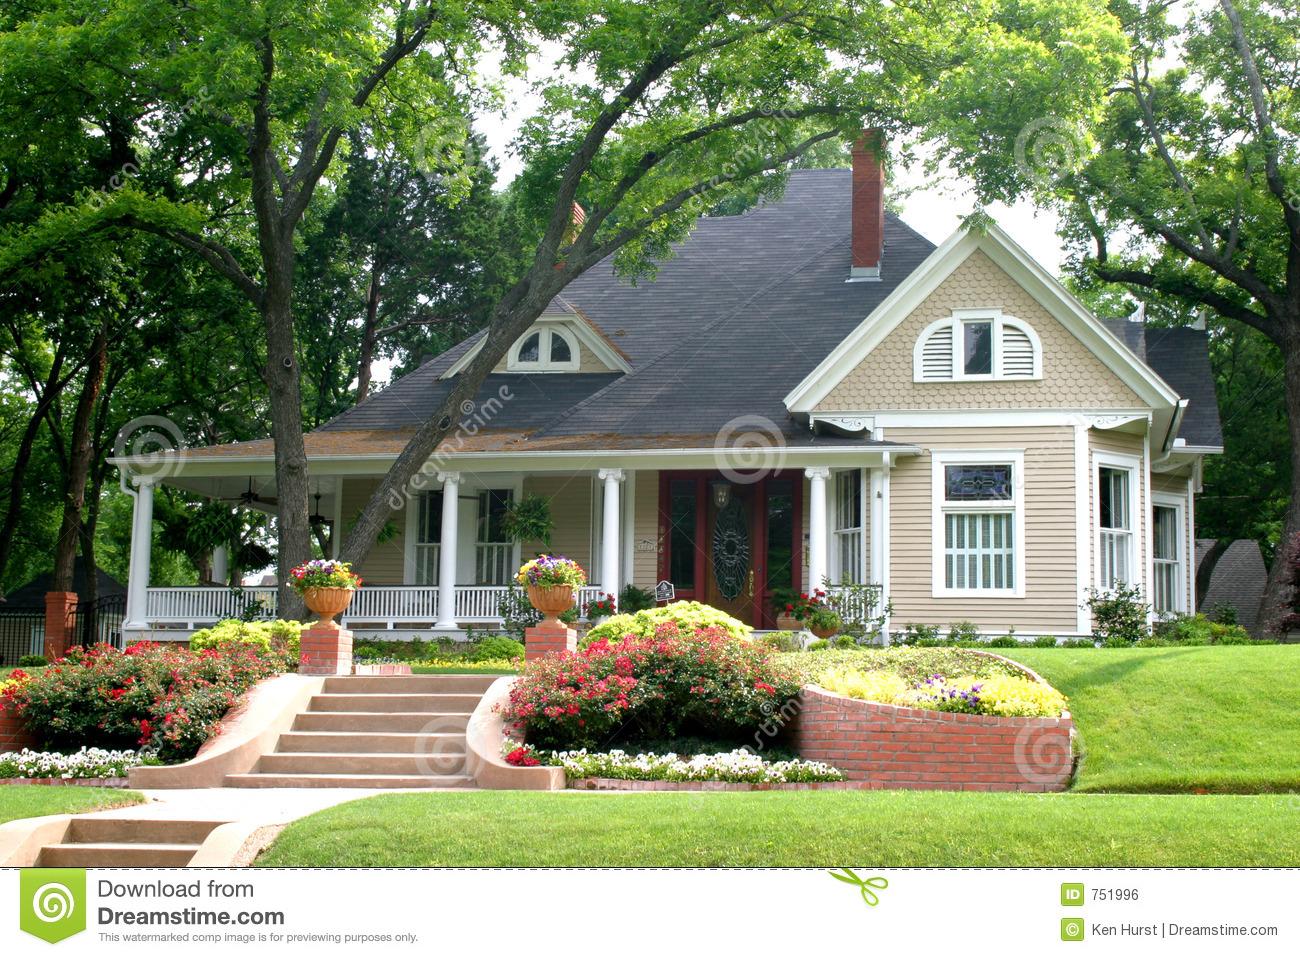 Classic House With Flower Garden Stock Photo Image Of Abode Ornate 751996